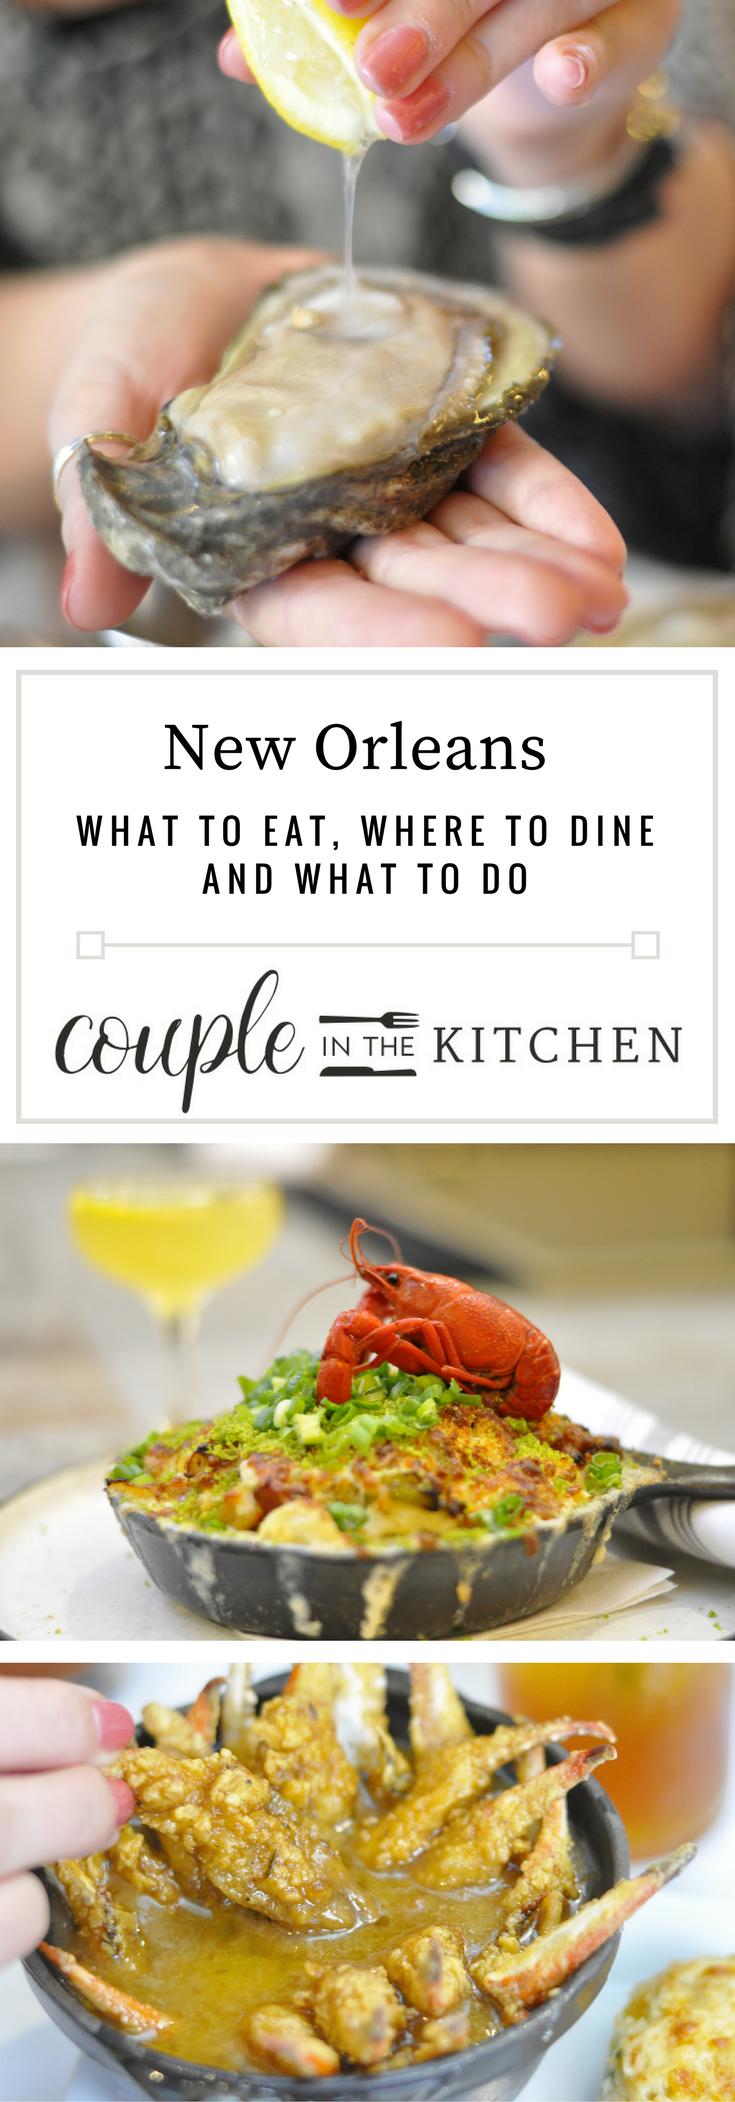 What to eat, where to dine, and what to do in New Orleans | coupleinthekitchen.com